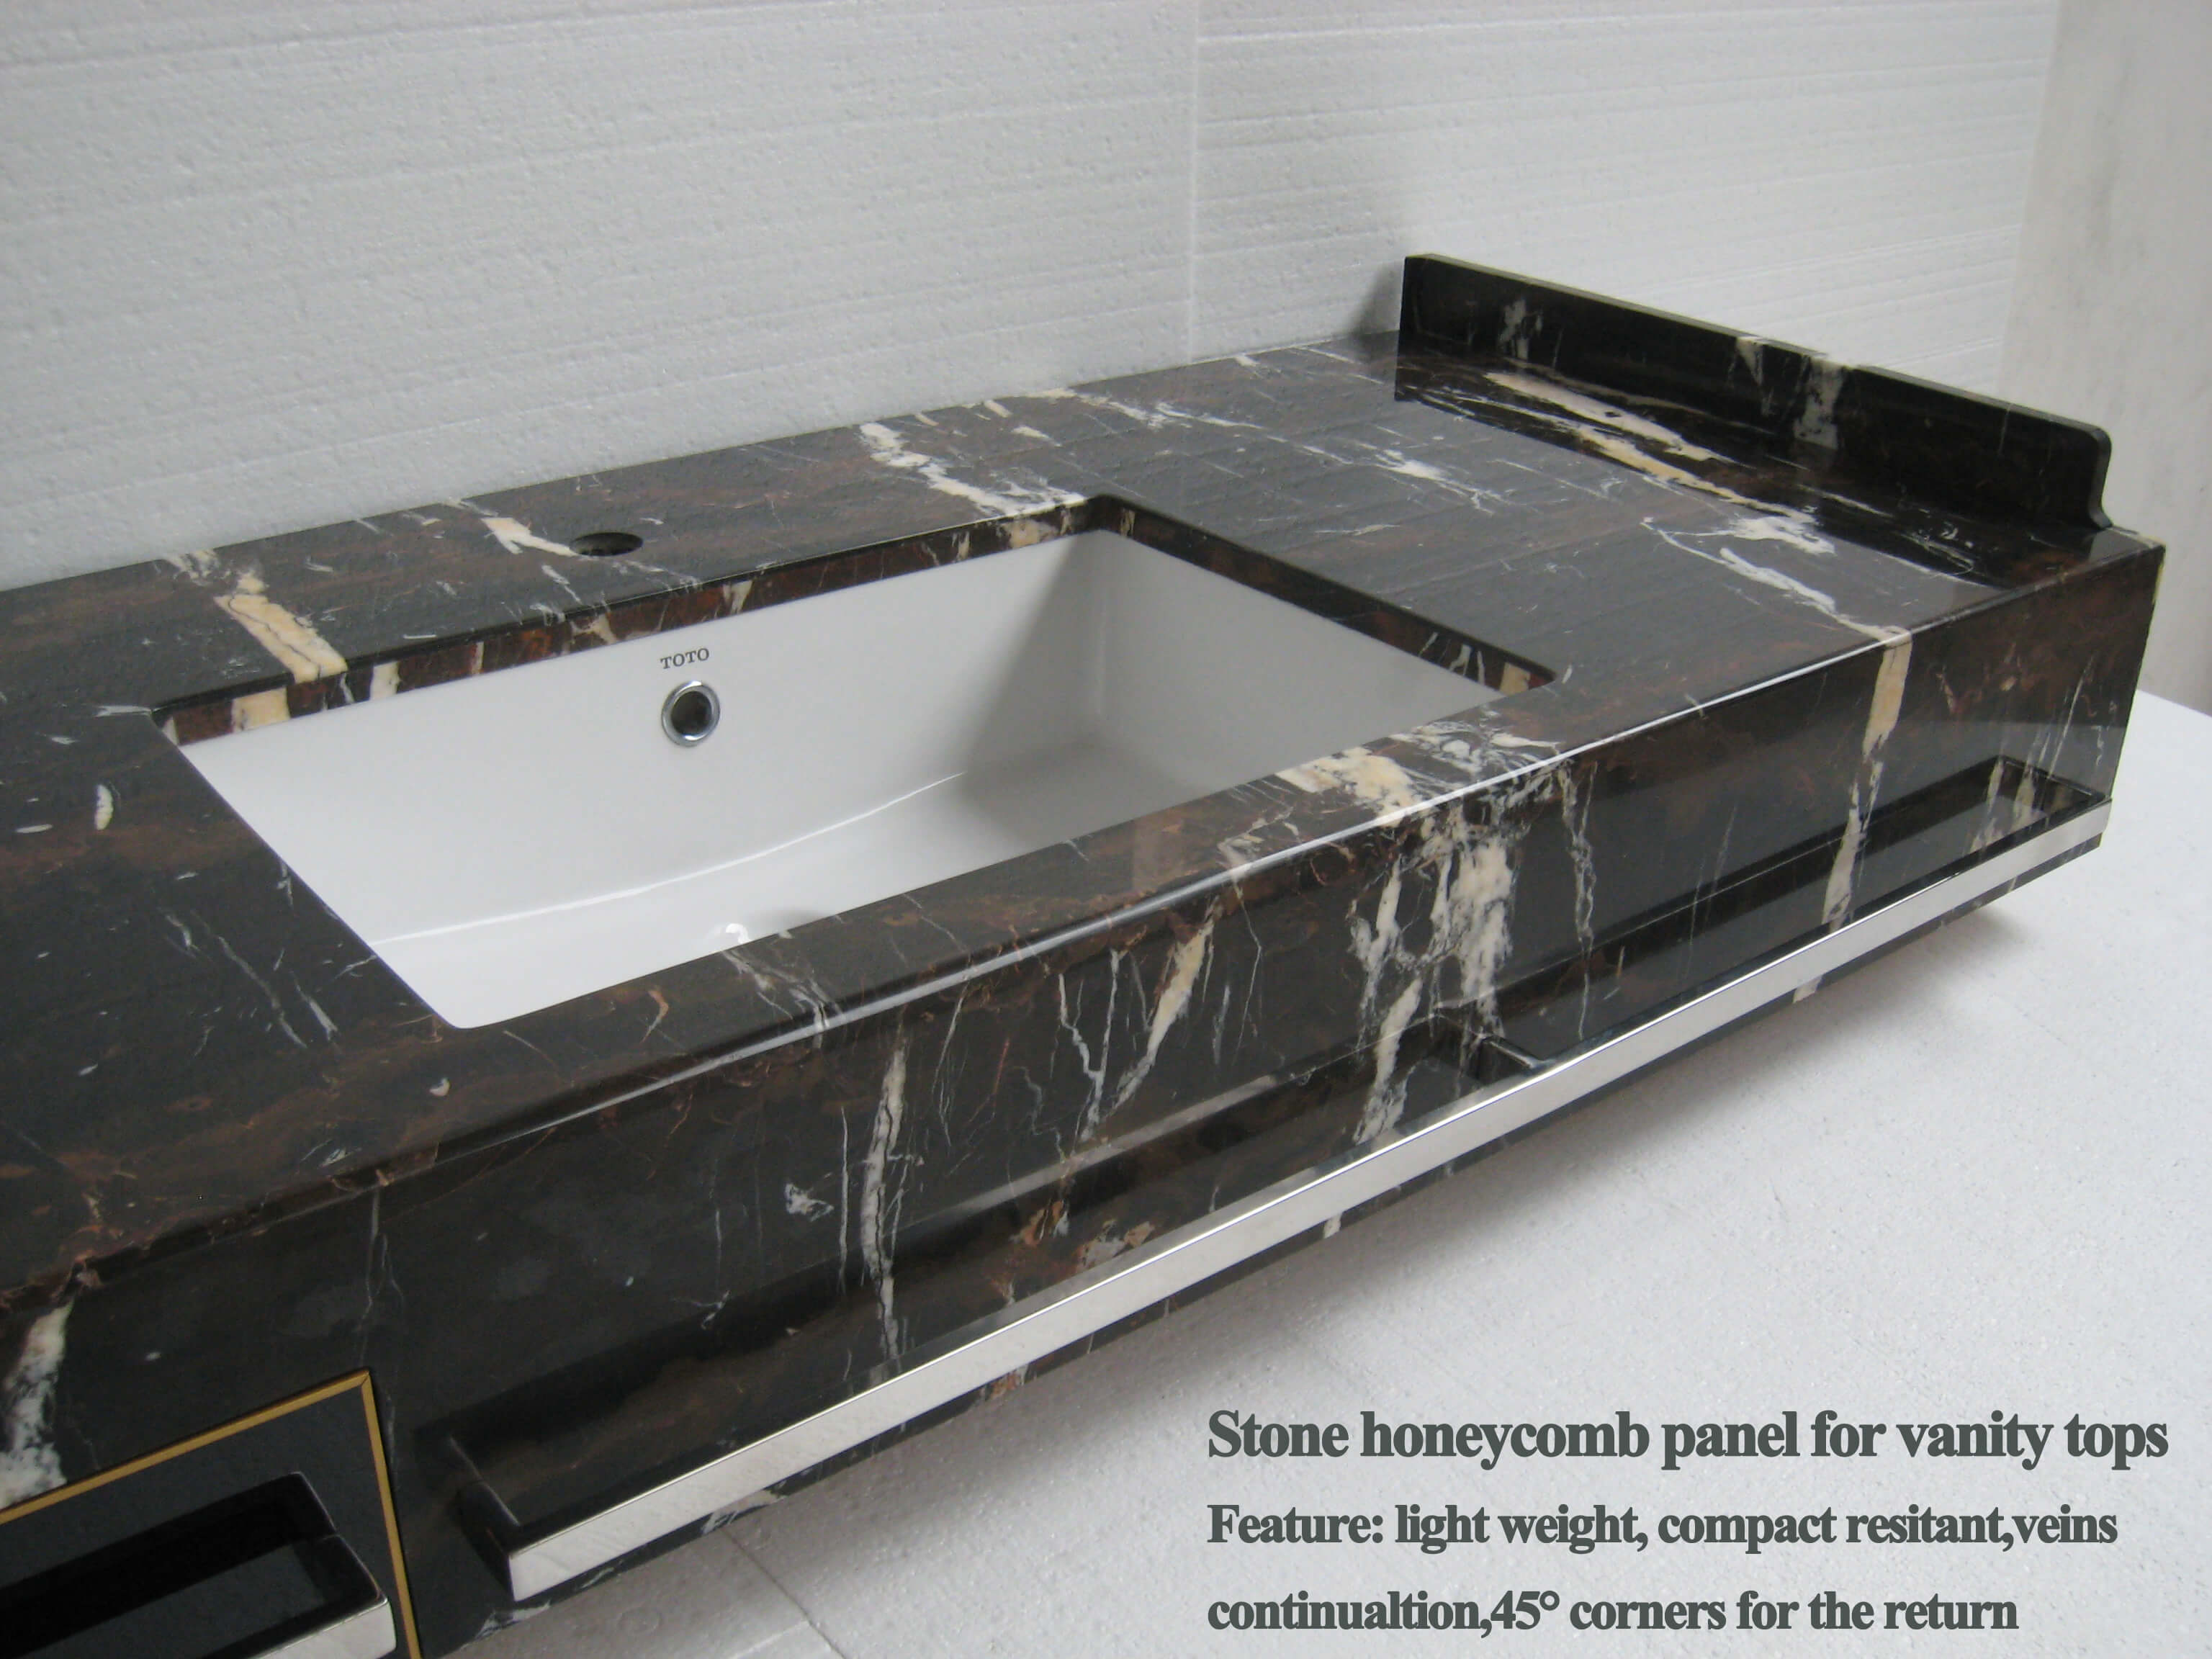 HyCOMB's bespoke vanity tops & wash basins, produced from stone honeycomb panels